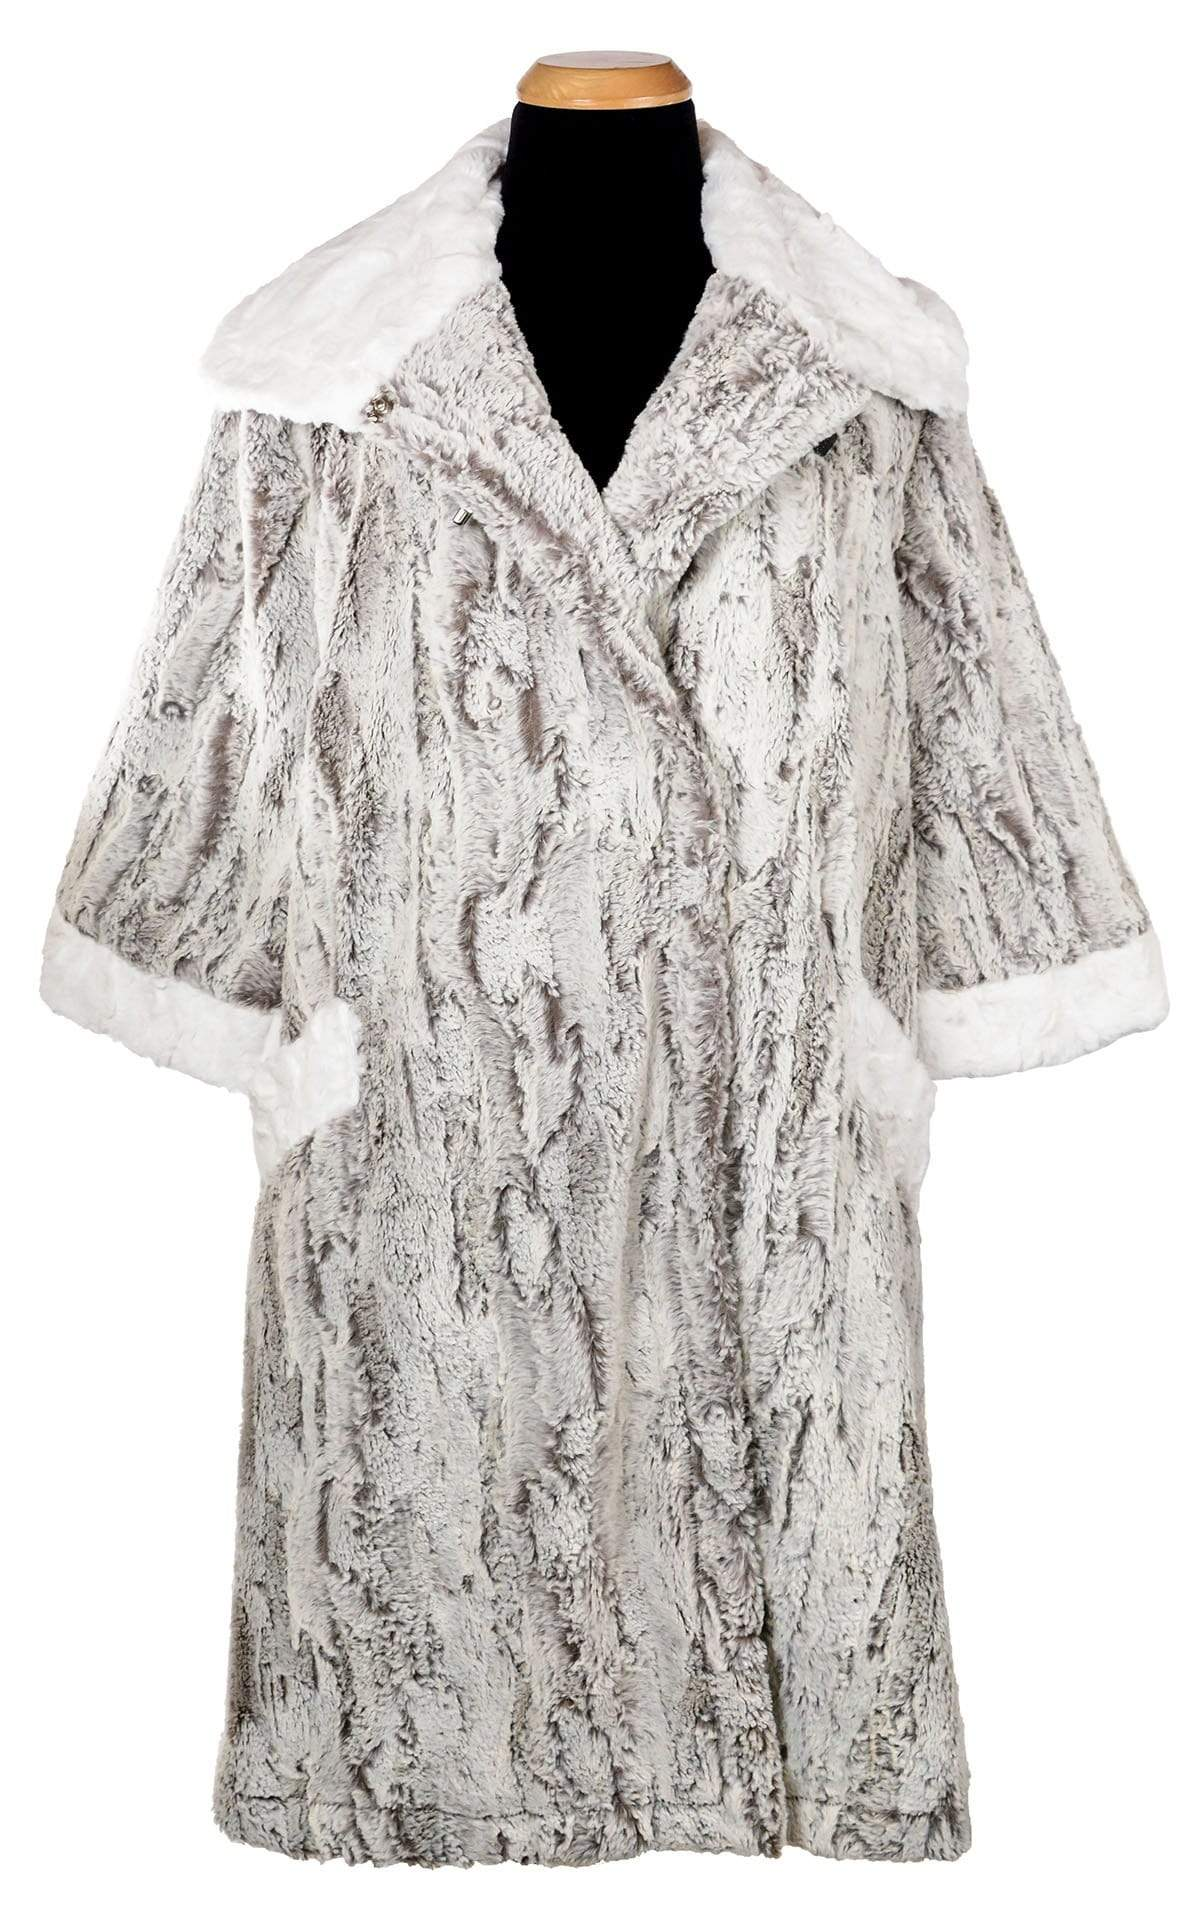 Crawford Coat - Luxury Faux Fur in Khaki with Cuddly Fur in Ivory